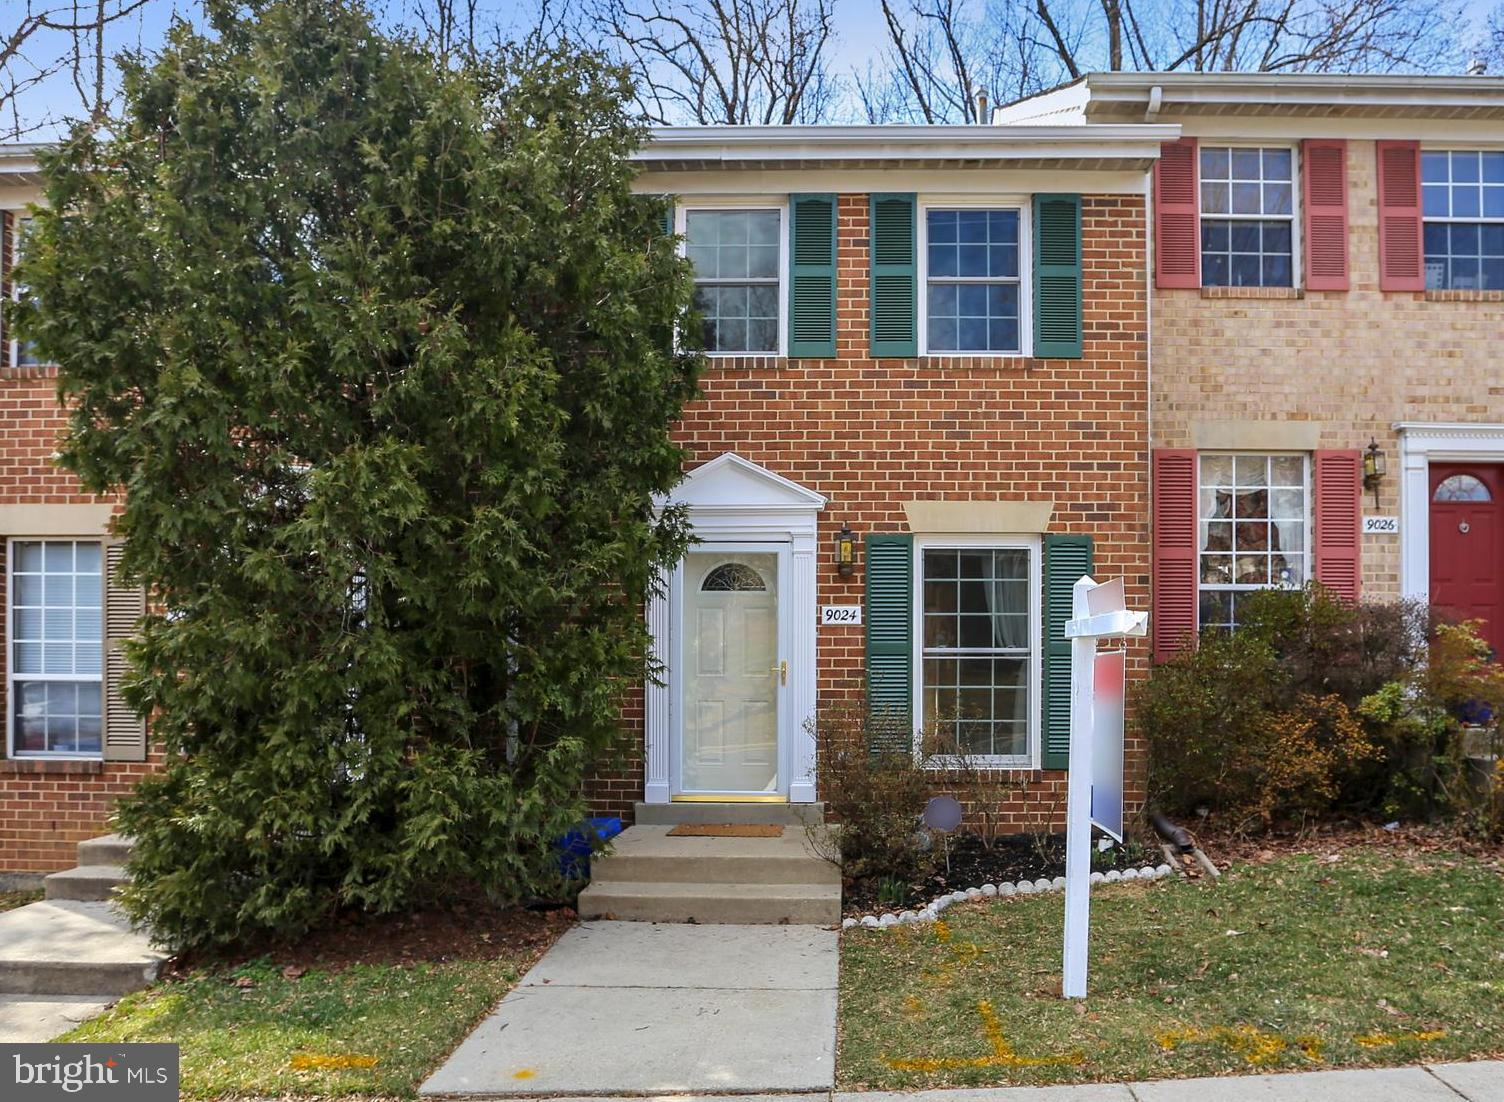 9024 PICKWICK VILLAGE TERRACE, SILVER SPRING, MD 20901